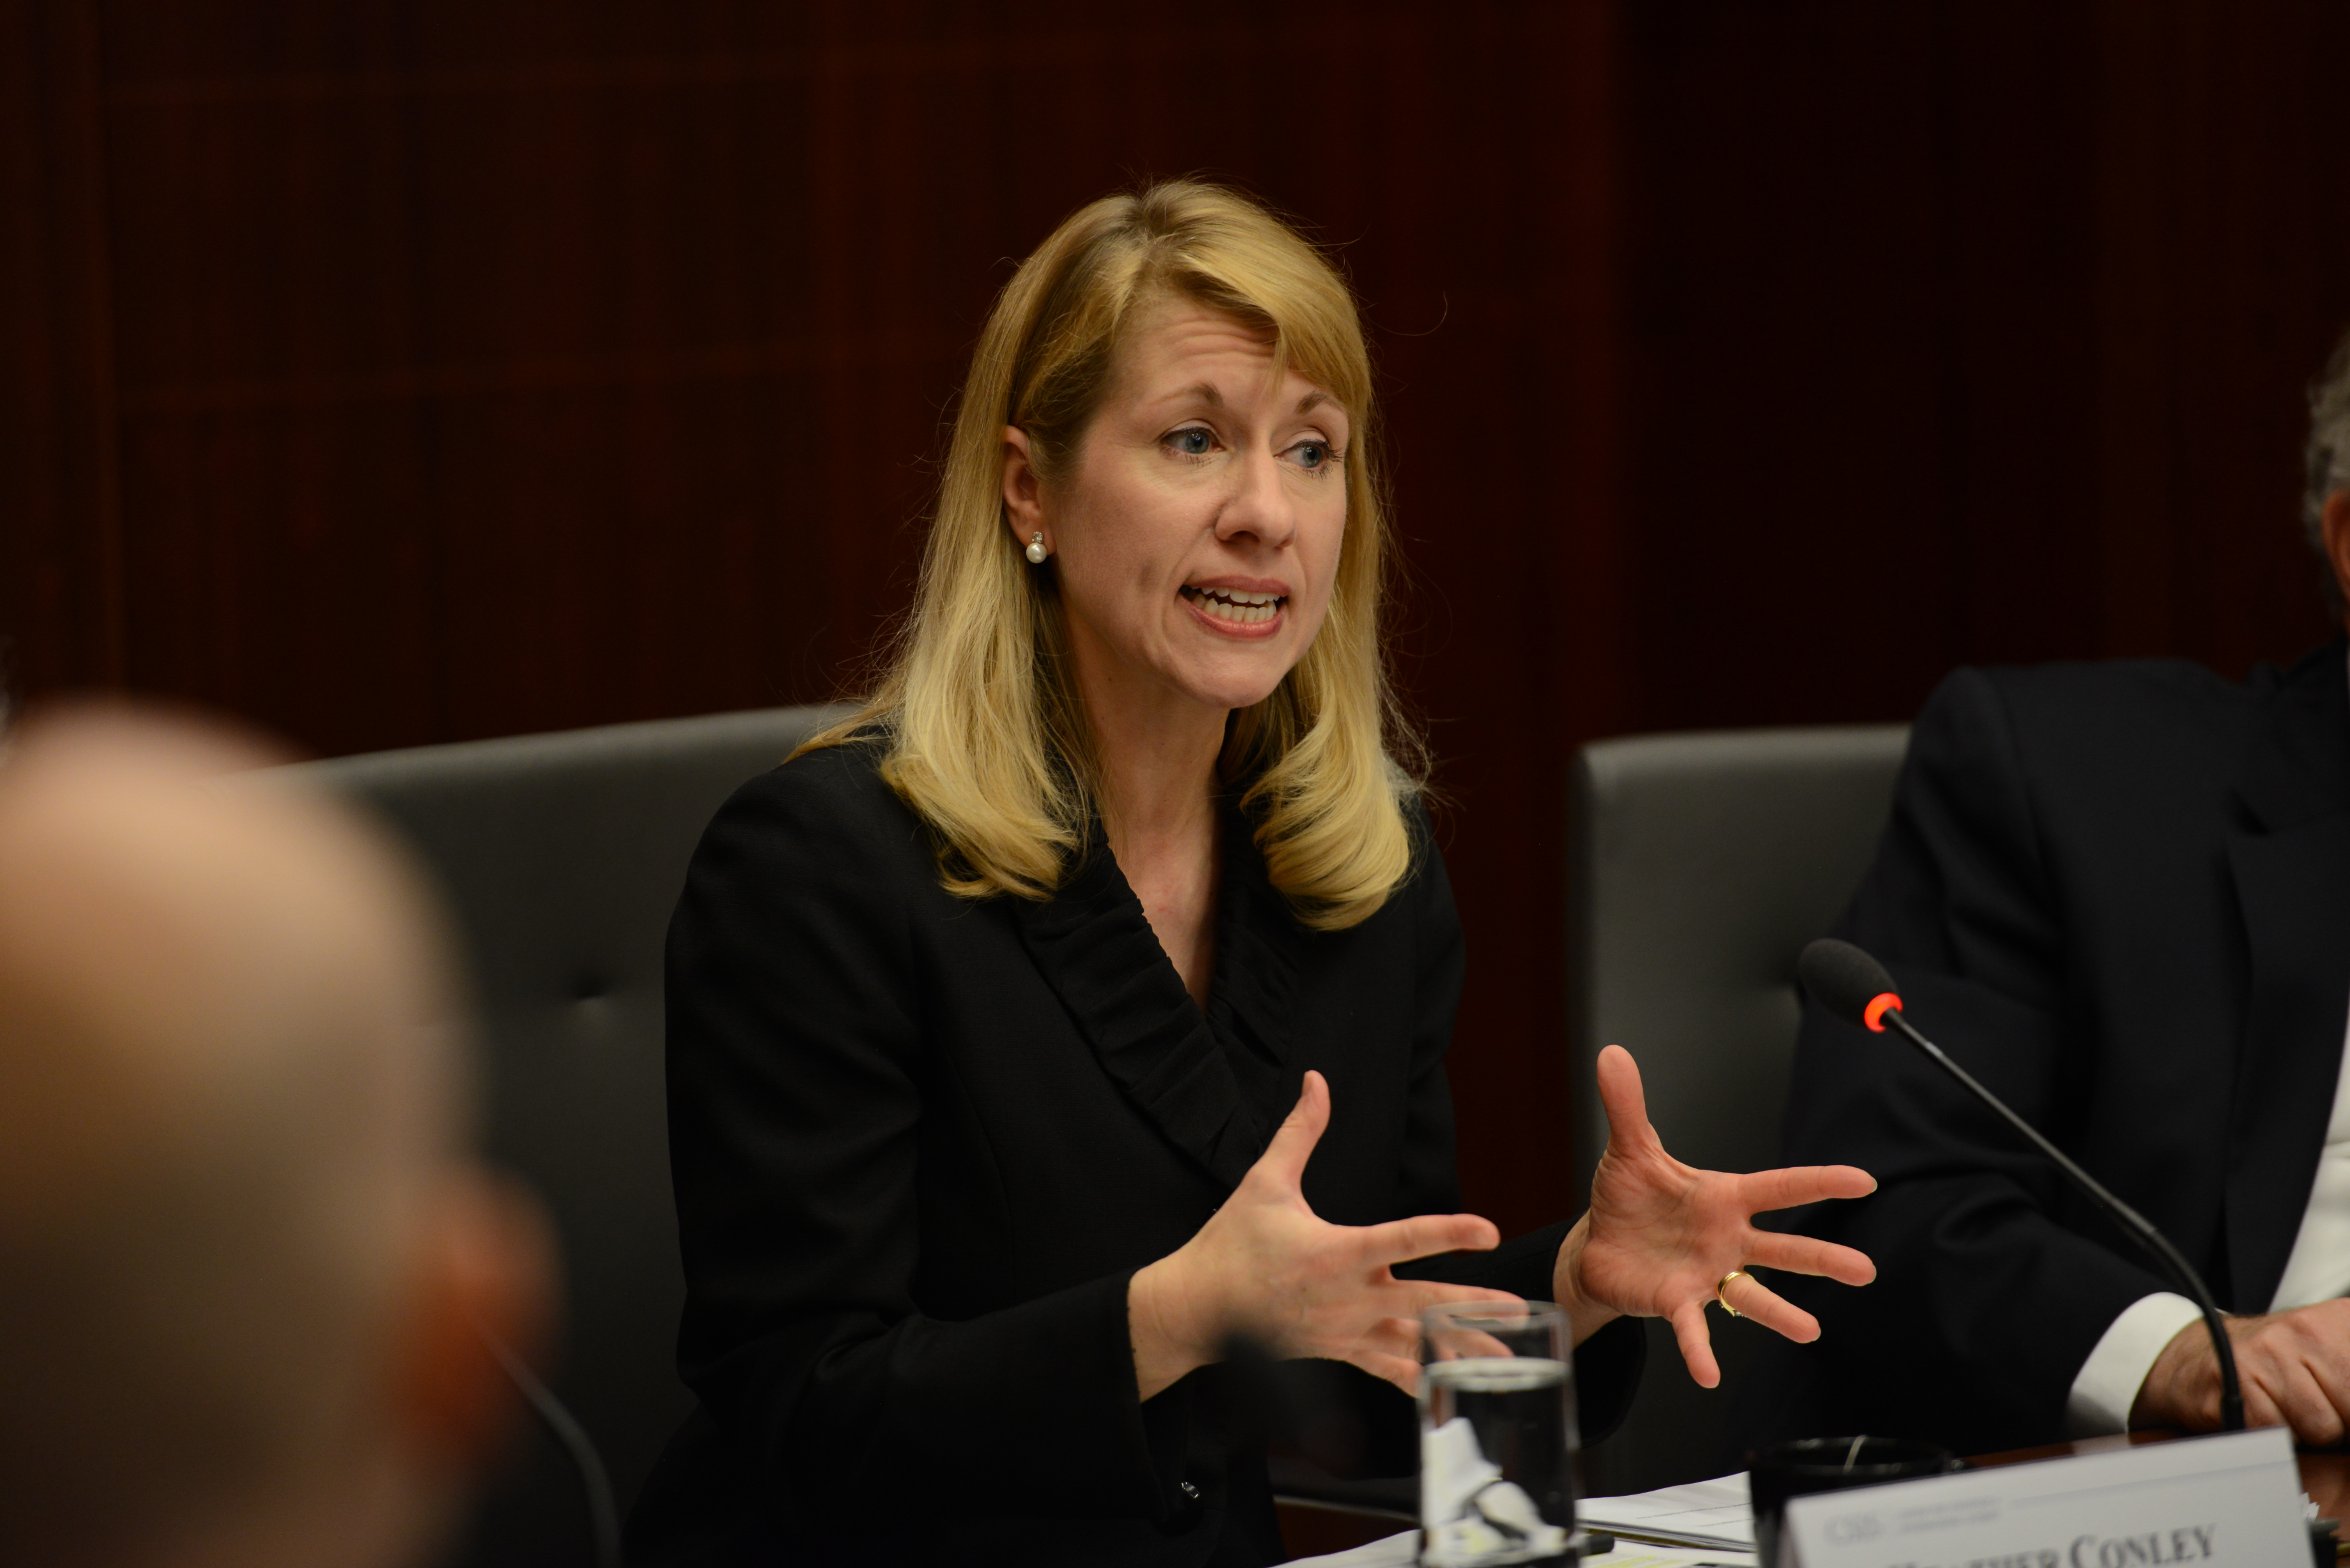 Heather Conley, director of the Europe program at the Center for Strategic and International Studies.